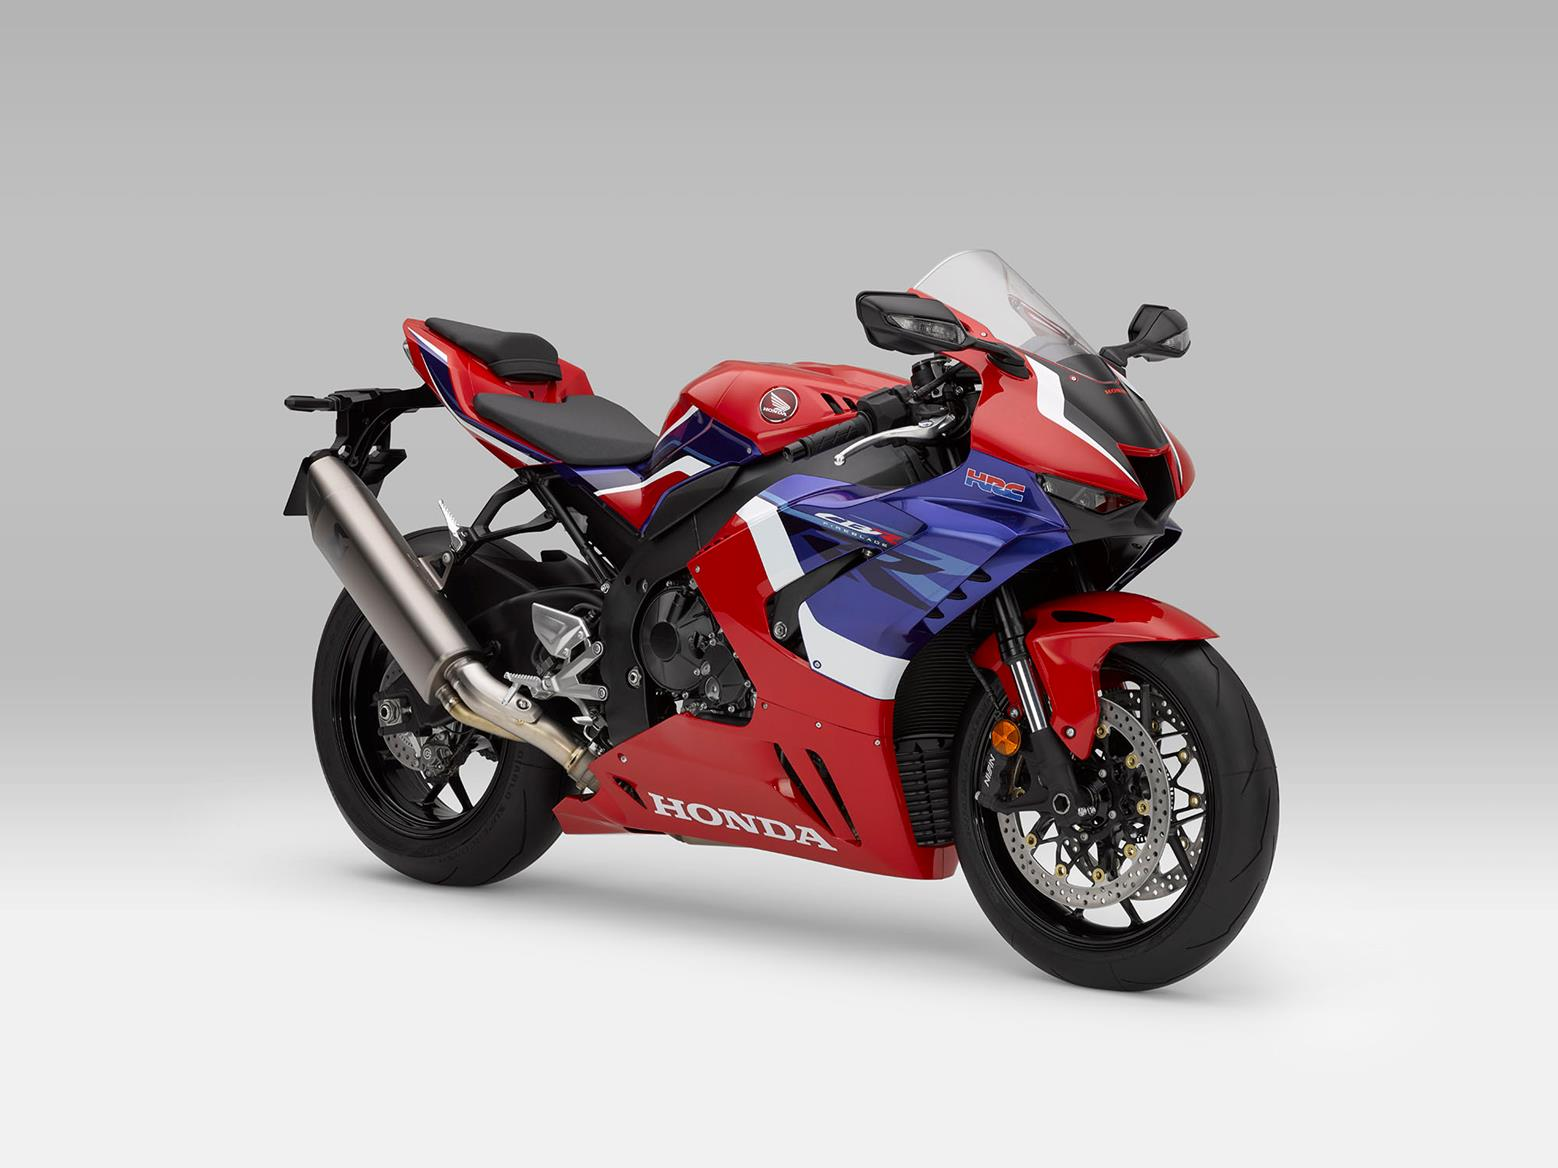 Honda CBR1000RR-R Fireblade front right red